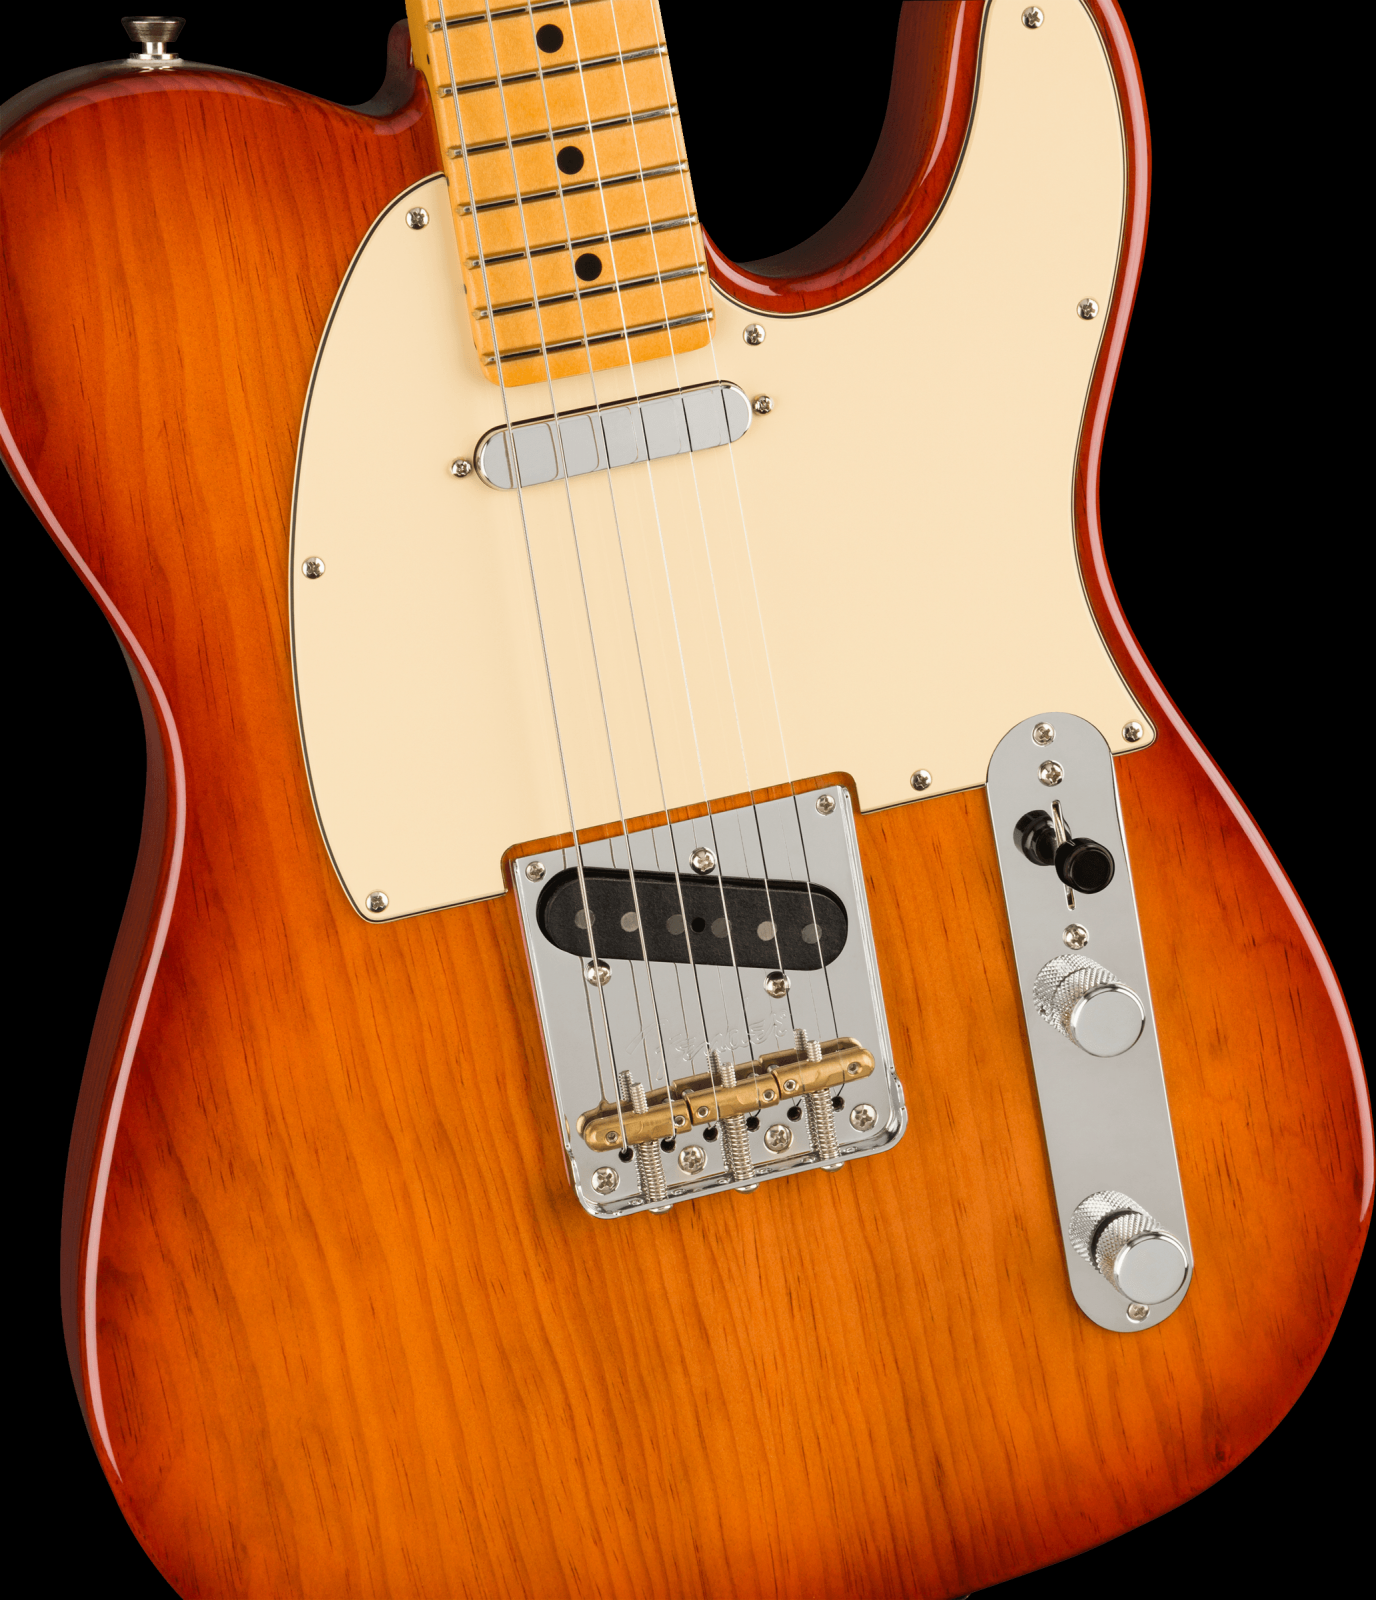 Fender American Professional II Telecaster Maple Neck - Sienna Sunburst